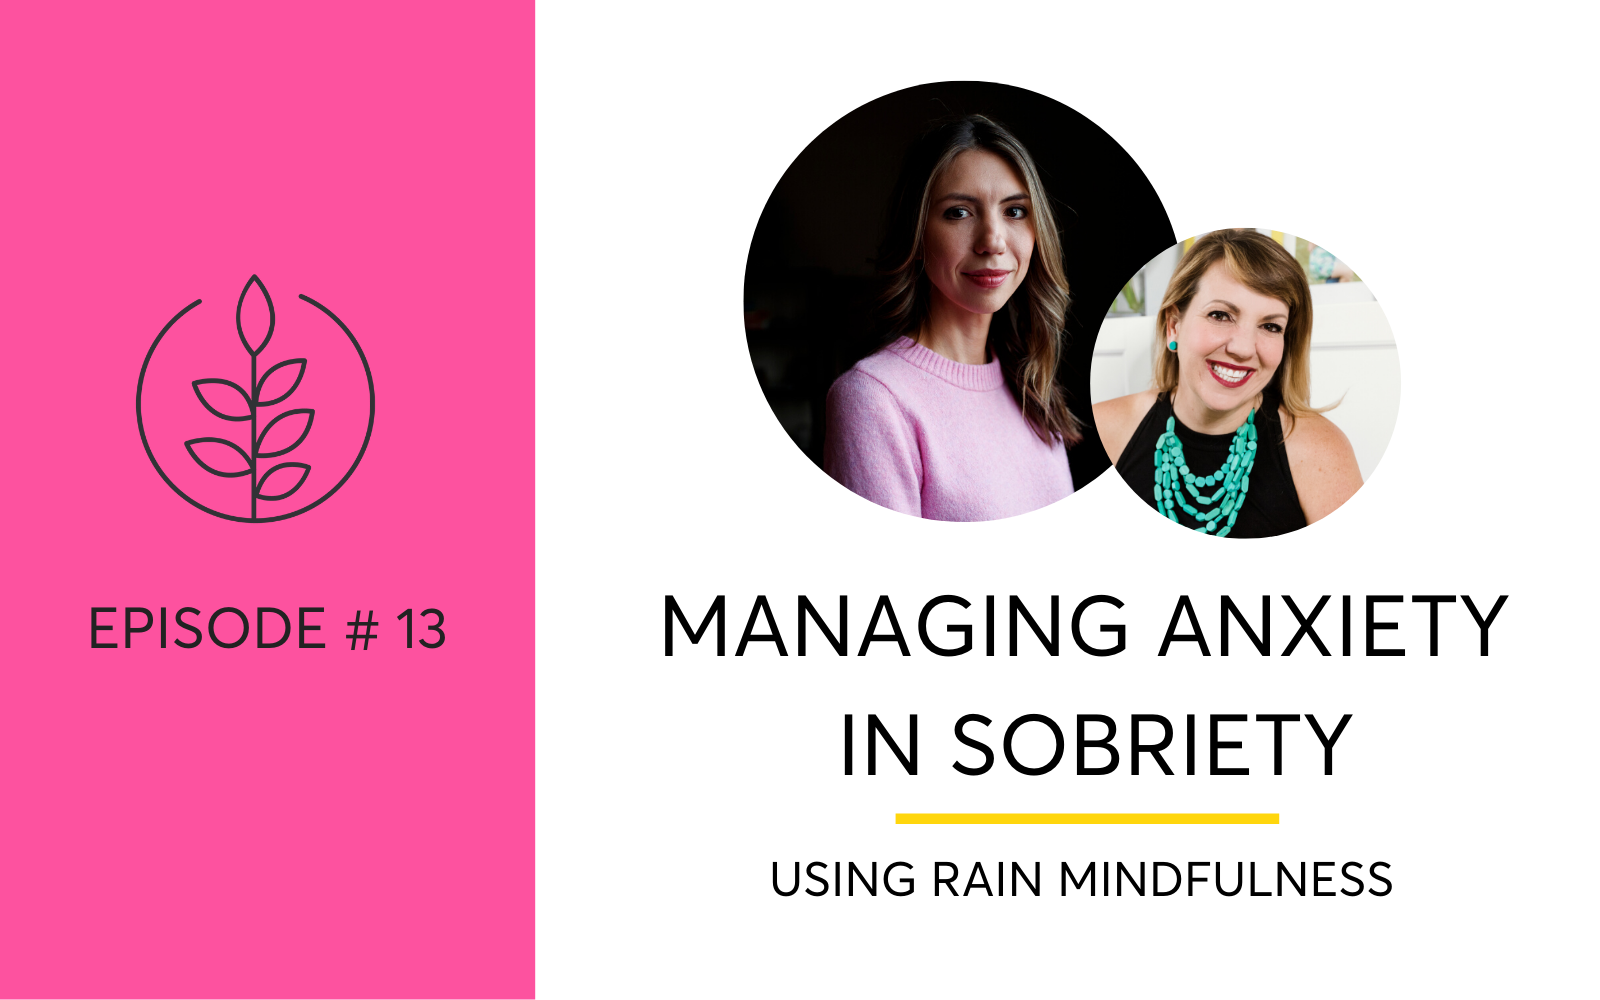 Managing Anxiety In Sobriety With RAIN Mindfulness